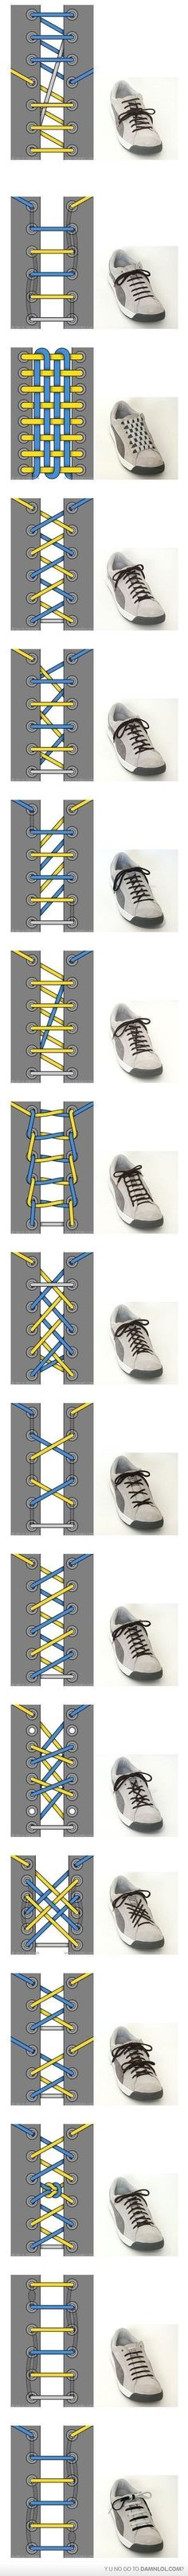 Different ways to lace your sneakers so they look cool